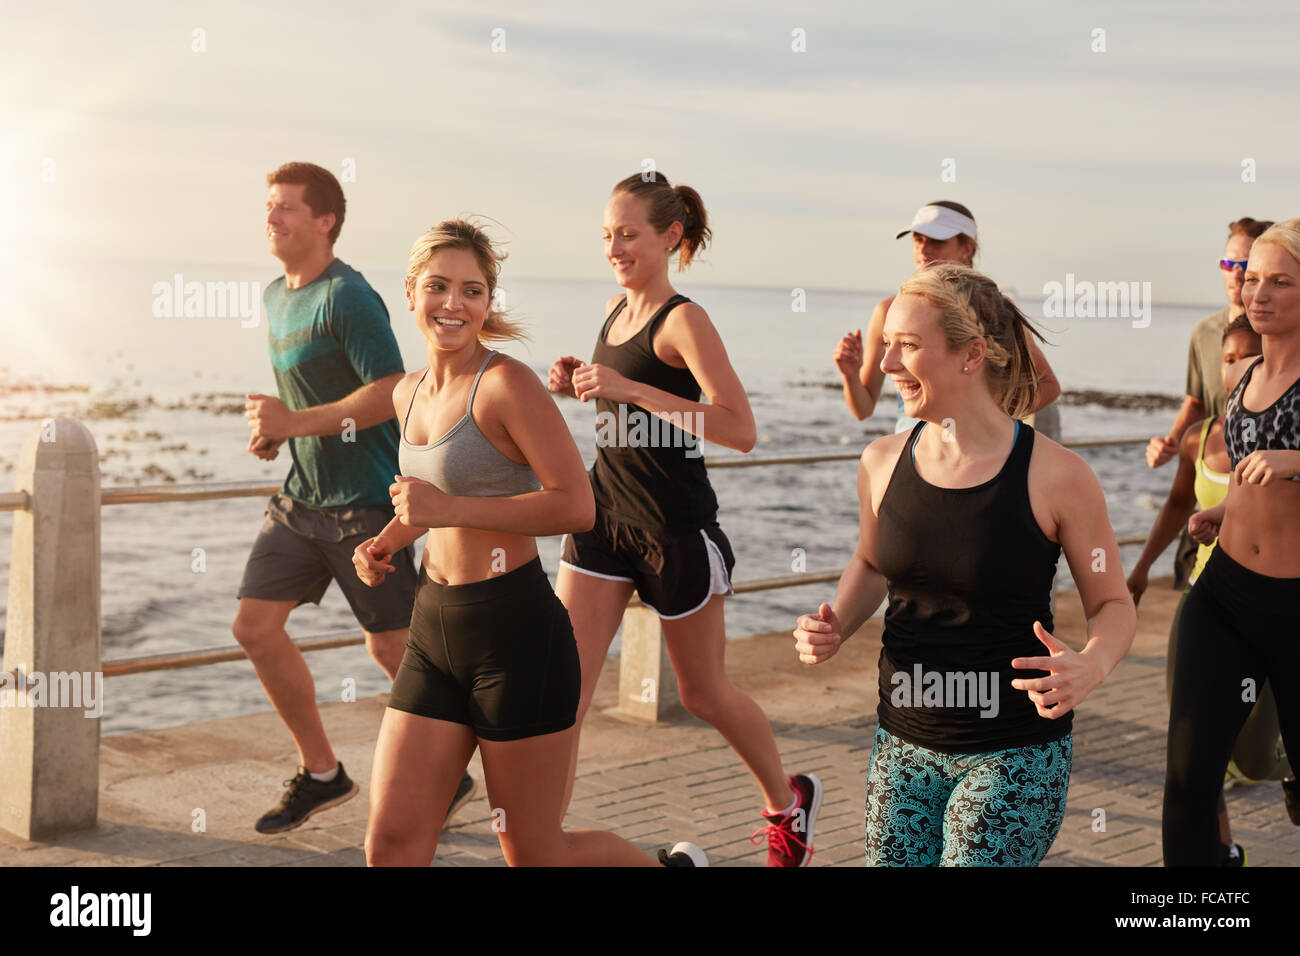 Portrait of healthy young men and women running together on seaside promenade. Active running club group training - Stock Image